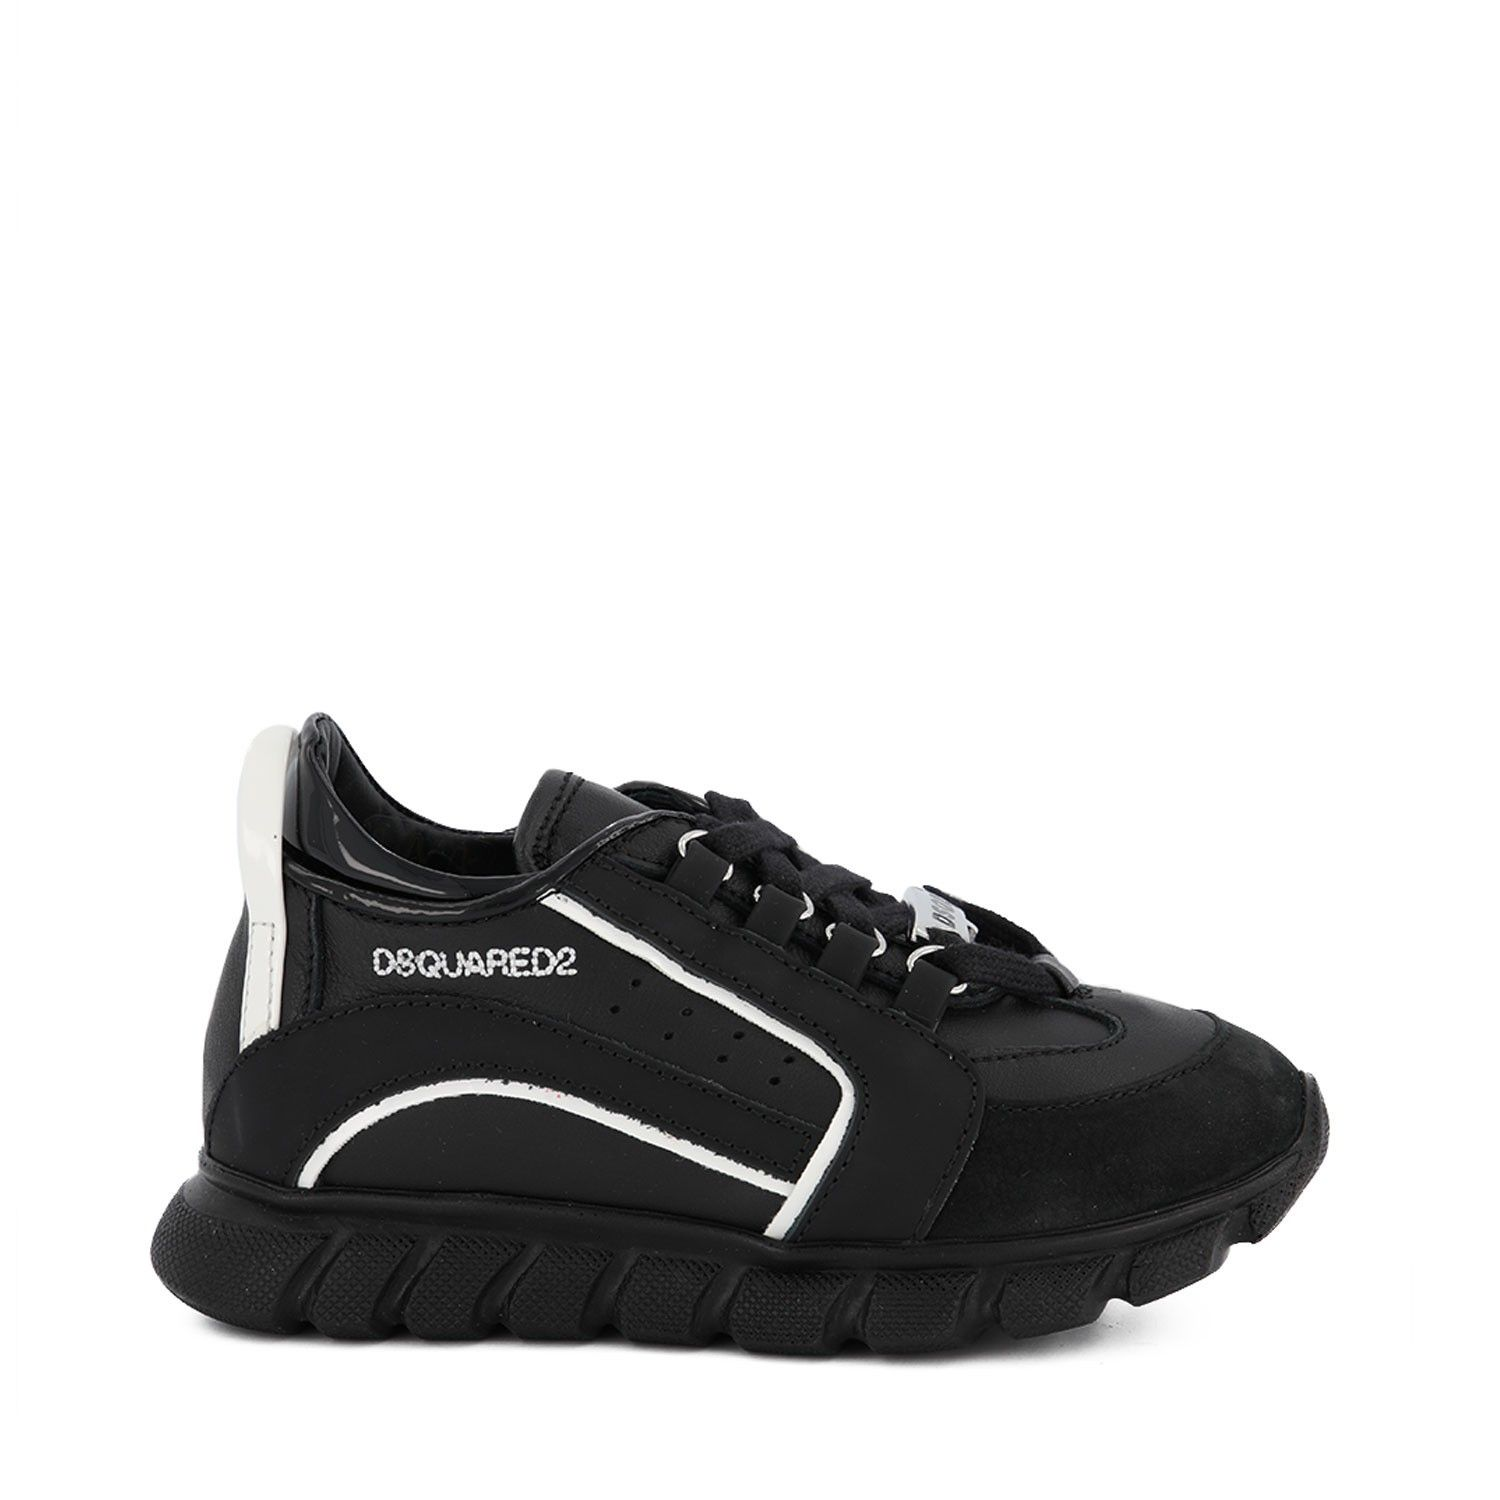 Picture of Dsquared2 63449 kids sneakers black